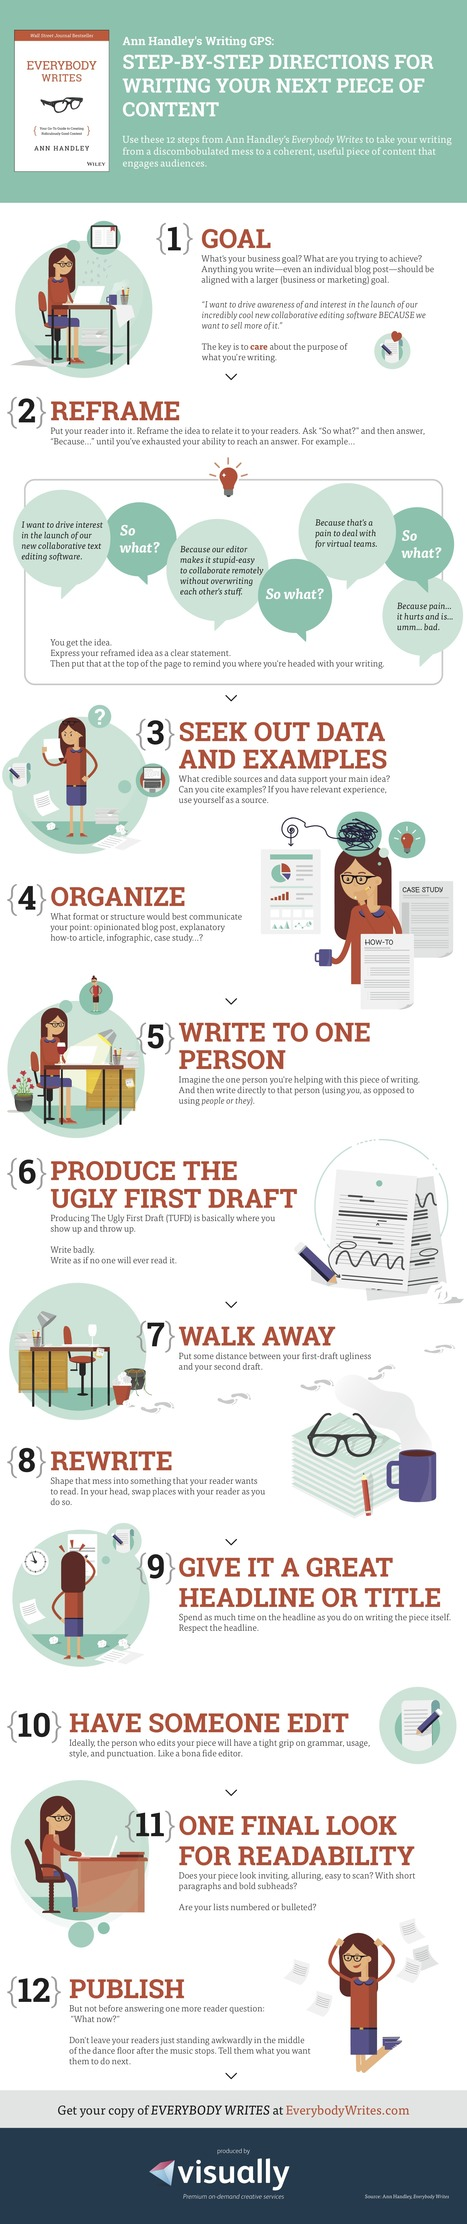 How to Write a Piece of Content From Conception to Publication - Infographic | 21st Century Literacy and Learning | Scoop.it